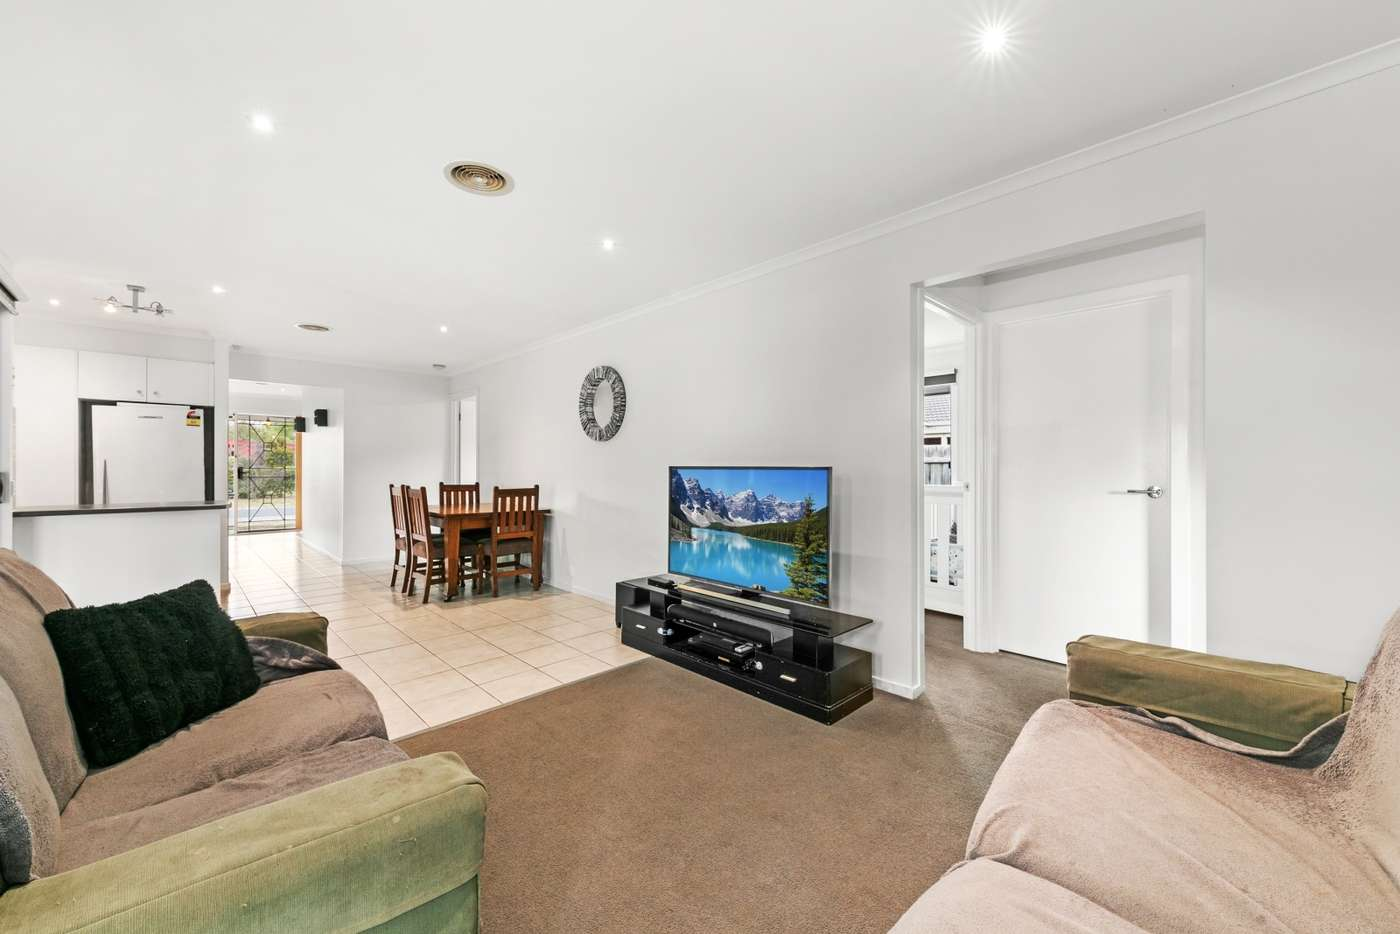 Fifth view of Homely house listing, 6 Kingfisher Court, Hastings VIC 3915